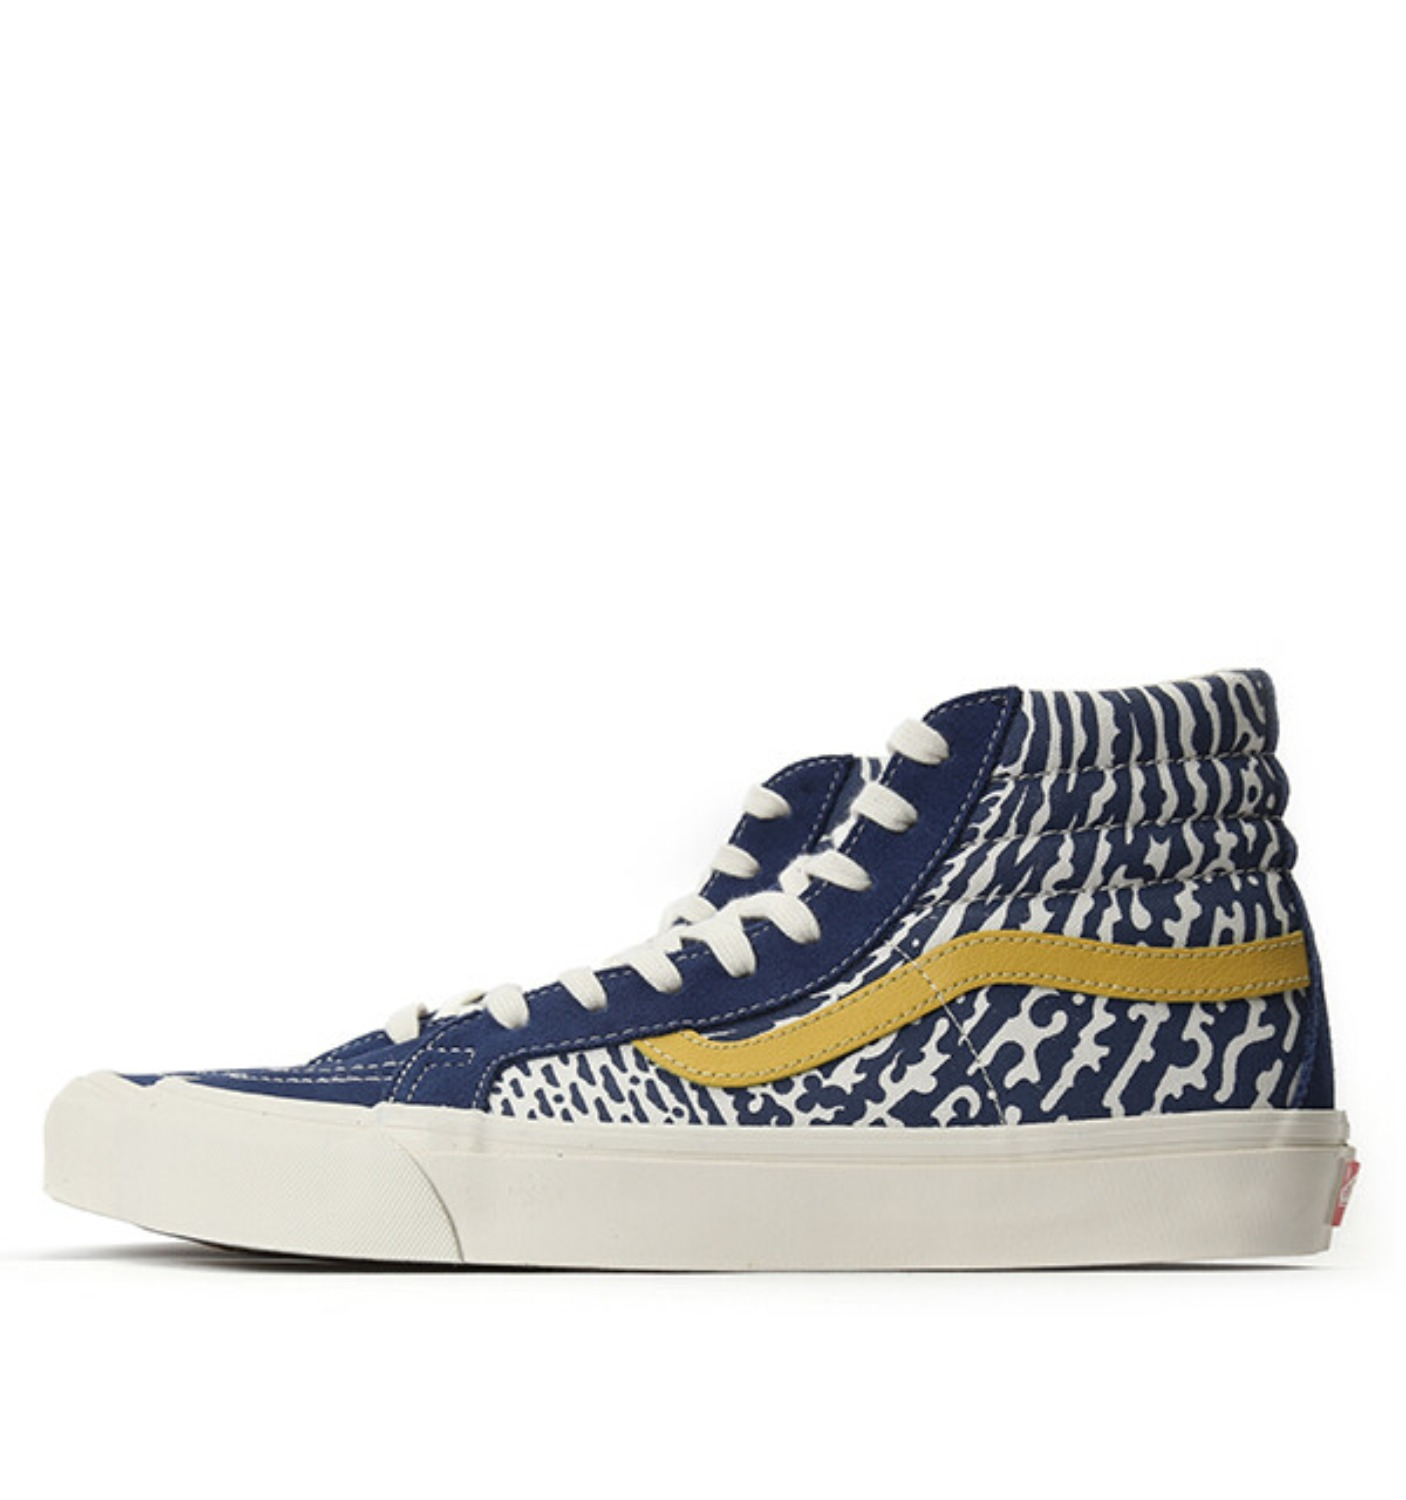 OG SK8-HI LX(SUEDE/CANVAS) JVH ESTATE BLUE